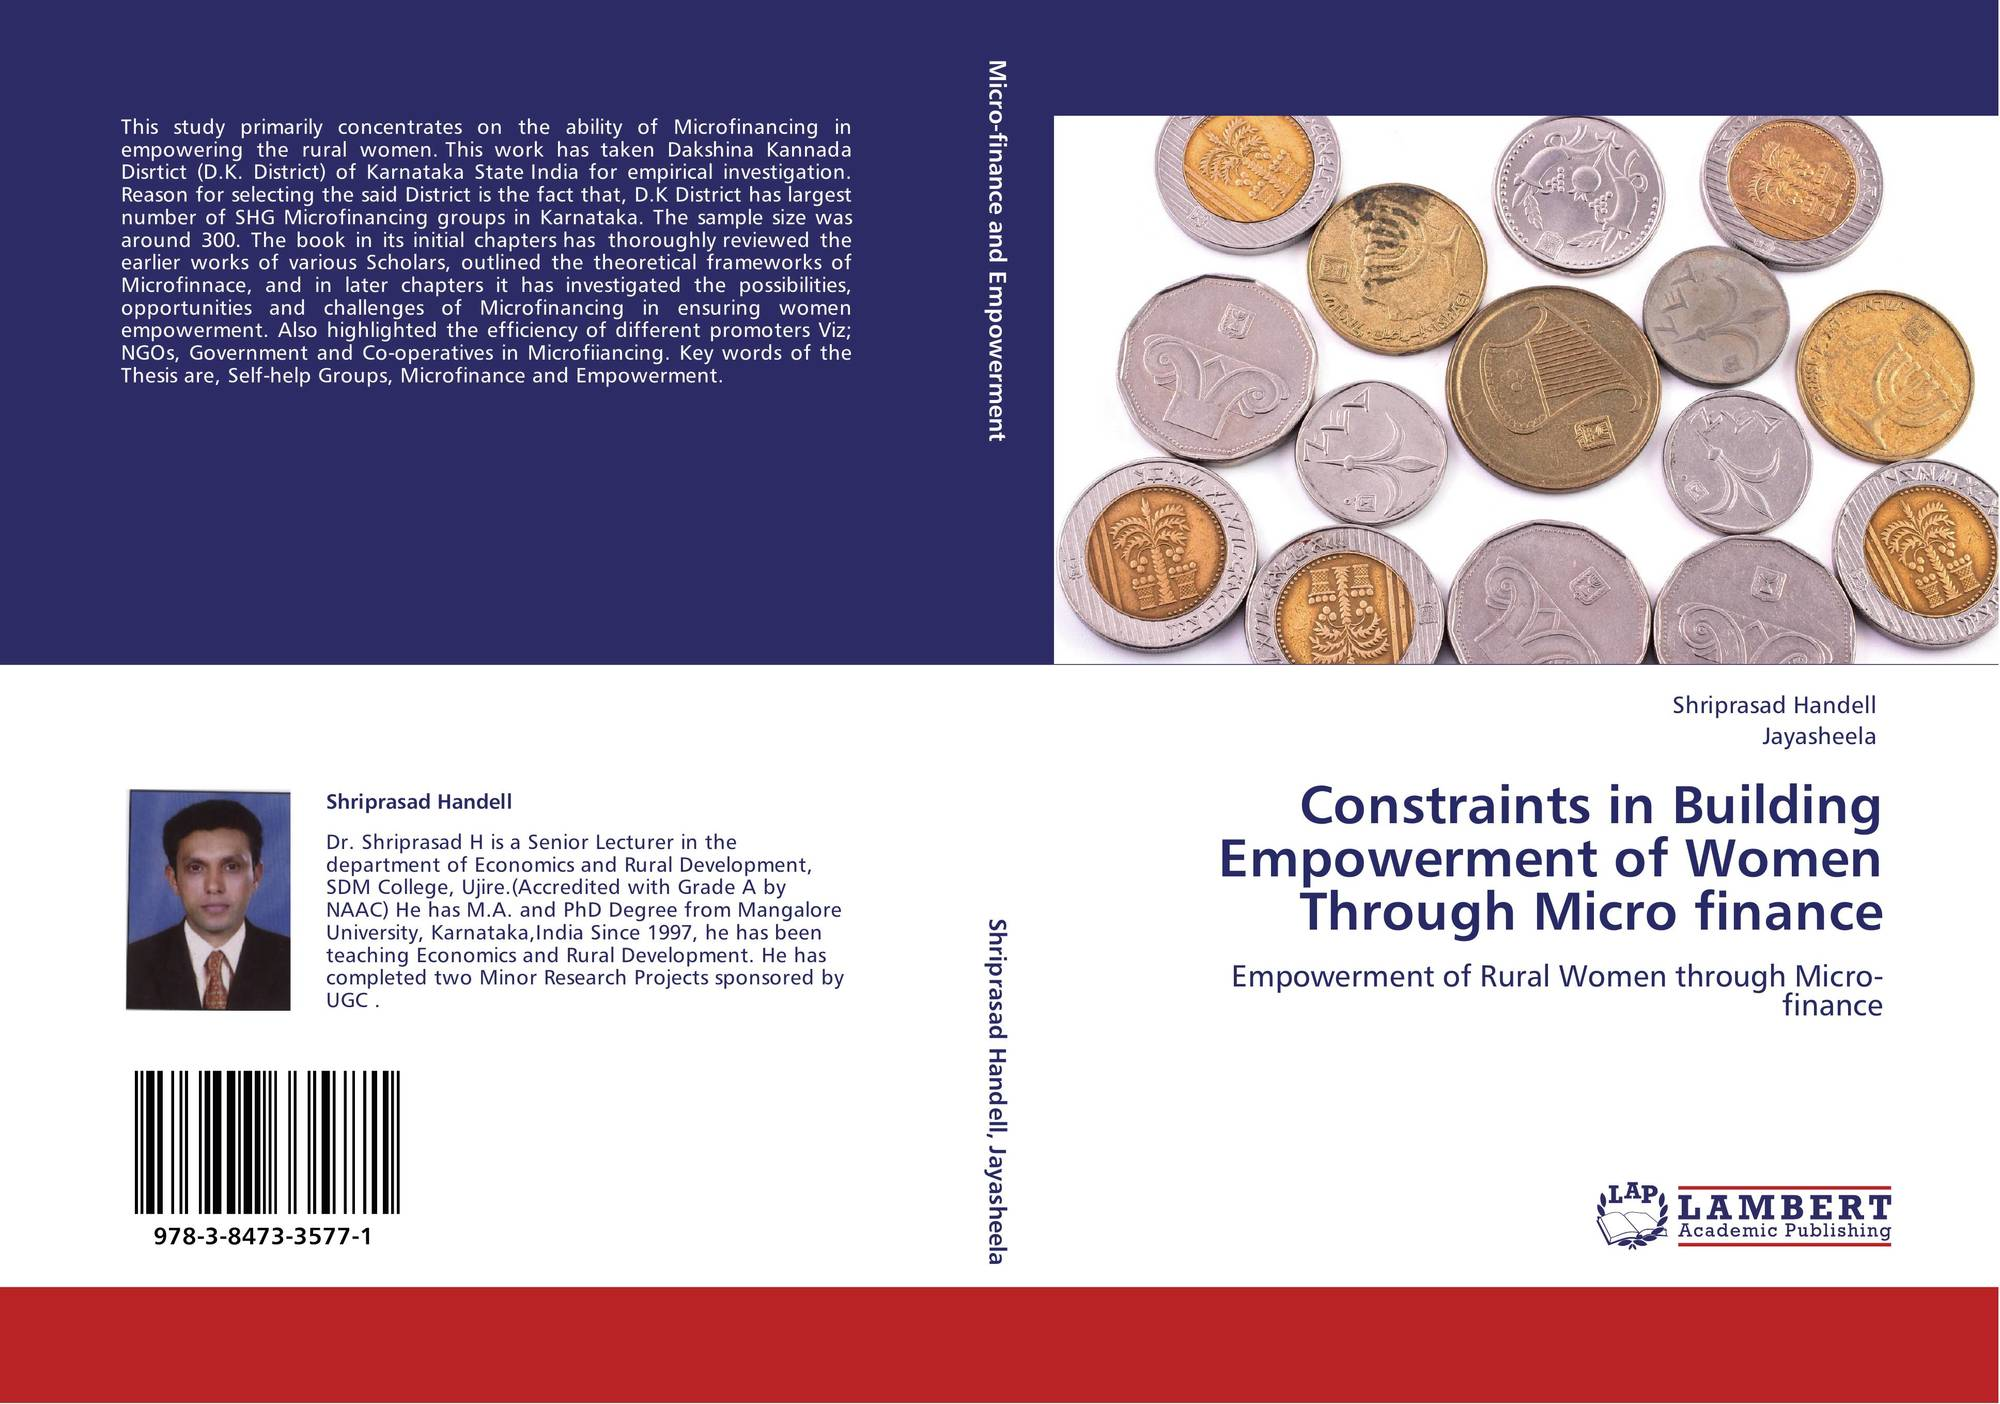 phd thesis on microfinance and women empowerment Microfinance and women empowerment micro-finance programmes not only give women and men access to savings and credit, but reach millions of people worldwide bringing them together regularly in organised groups.